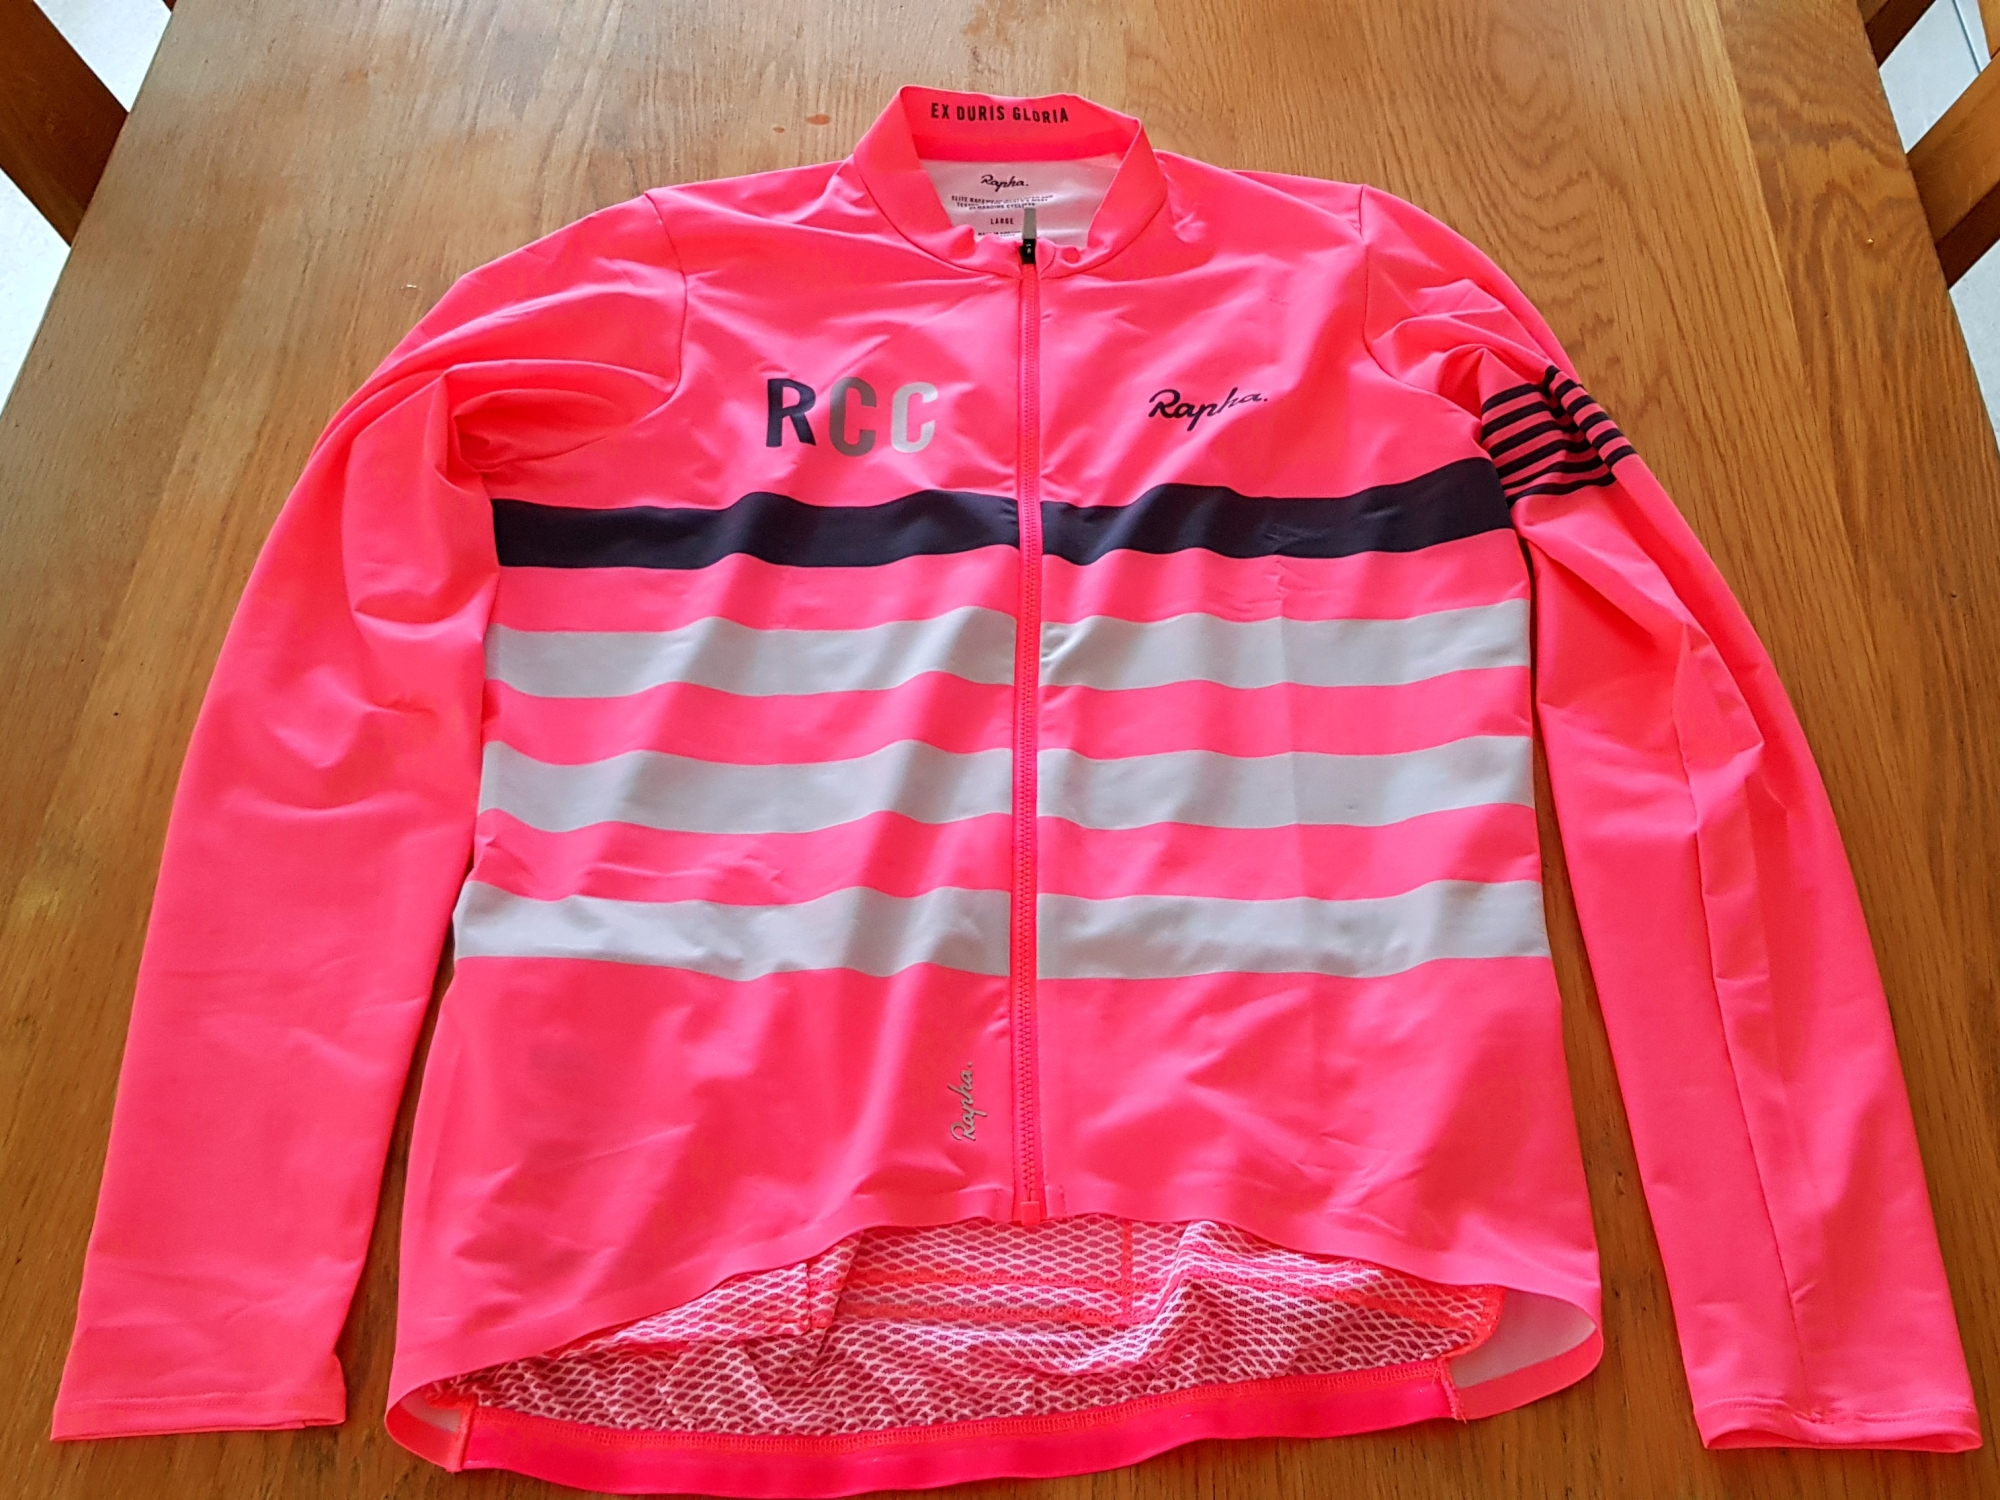 Rapha Brevet Insulated Gilet and Midweight Pro Team Jersey ... c572f4650